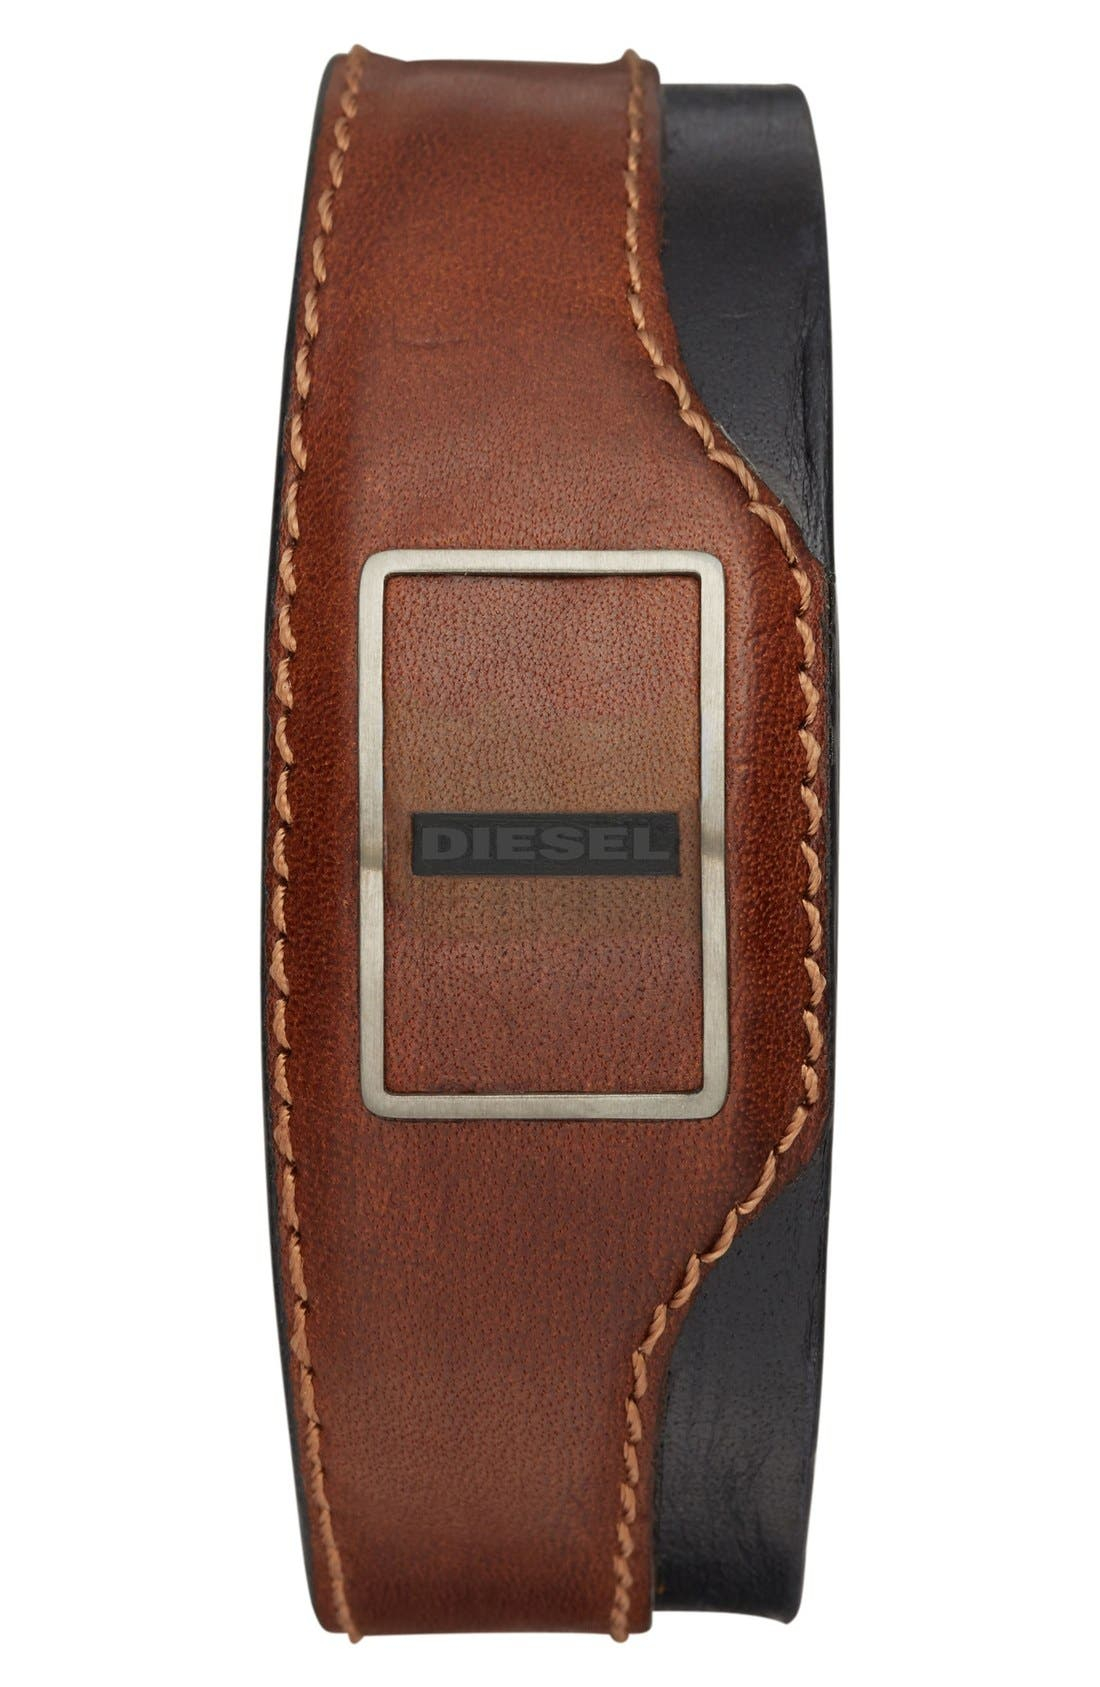 Leather Cuff Activity Tracker,                             Main thumbnail 1, color,                             Brown